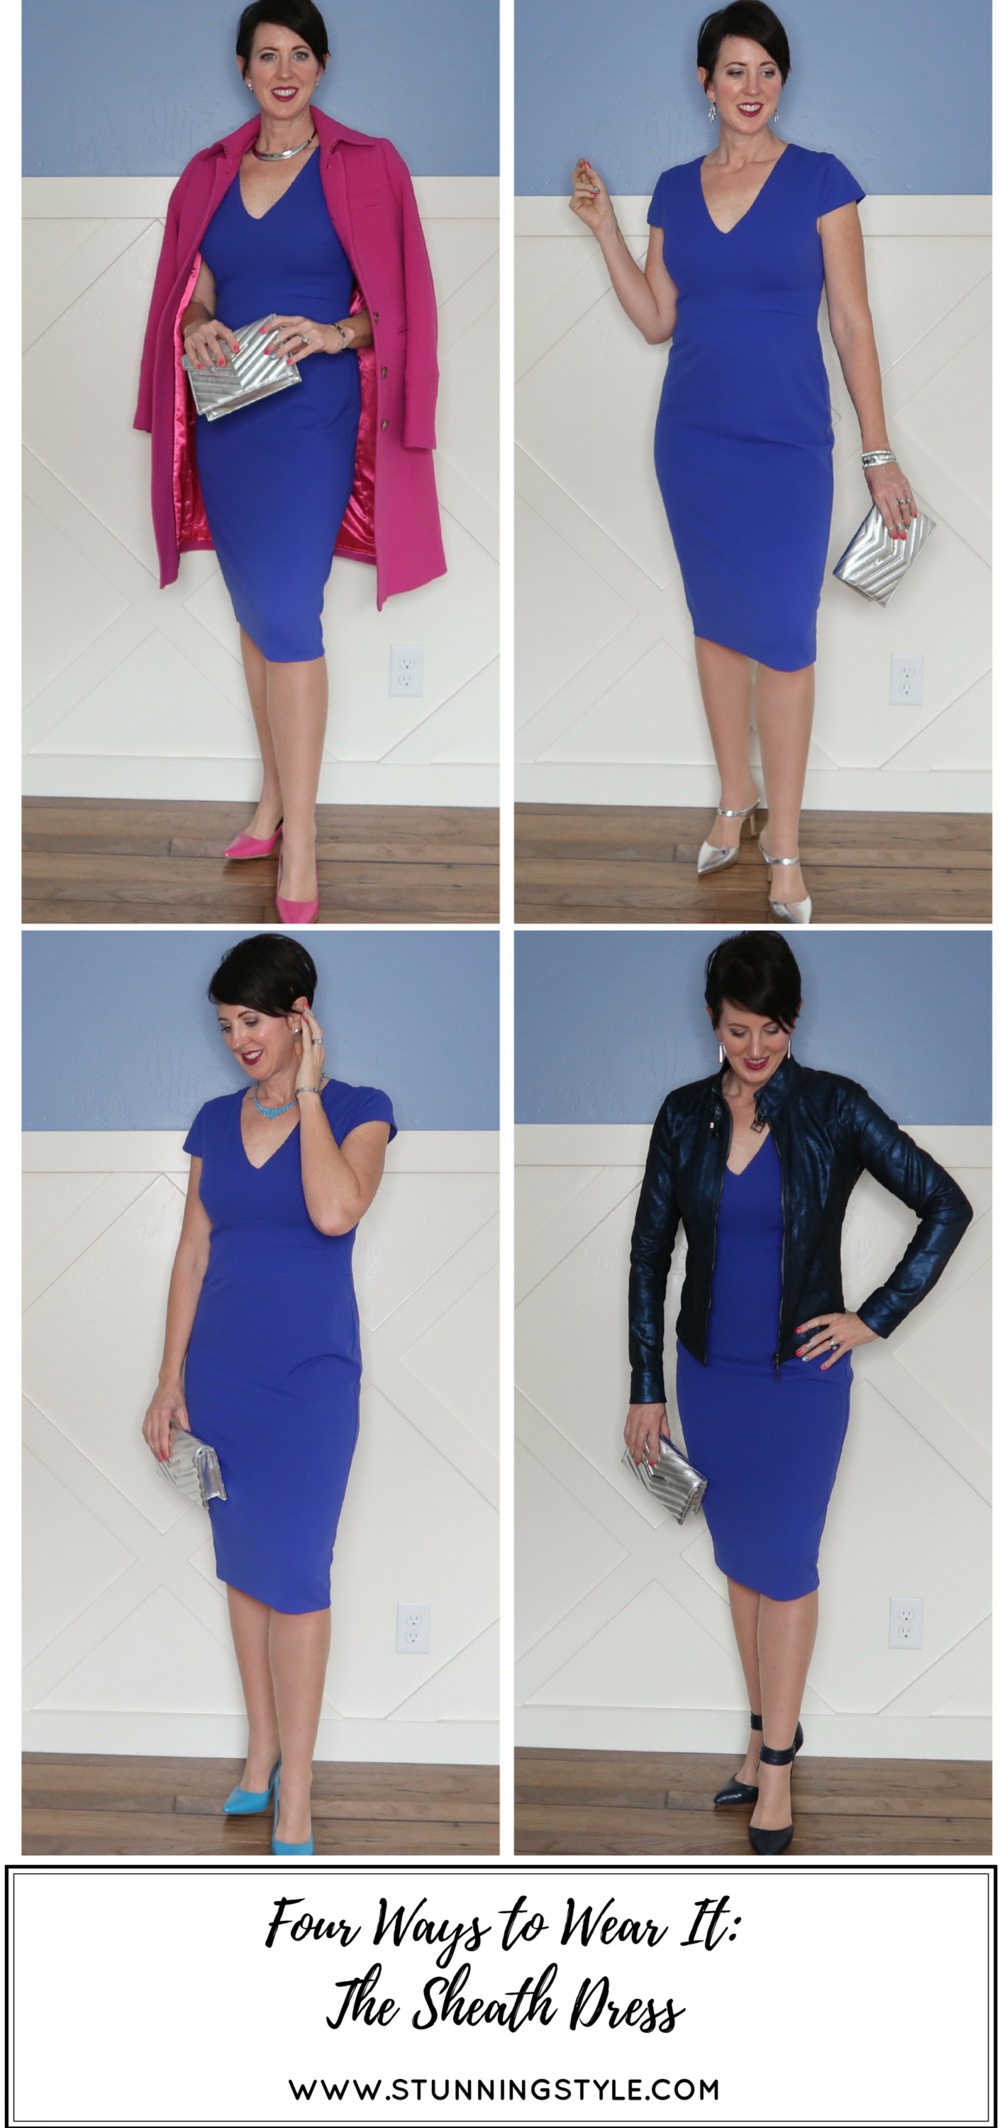 A sheath dress doesn't have to be black to be classic and versatile. I styled a blue sheath dress four ways to show how I would wear it for four different special events I have coming up this month: a baptism, Easter, wedding anniversary, and my birthday (plus tickets to see Hamilton!!). I've got you covered, no matter what the weather is: winter, spring, summer or fall. You will love how beautiful and chic it can be. I also share 10 more ways to style if from more casual to office appropriate. Number 5 is my favorite! Come see all the ways you can fashion a sheath dress!